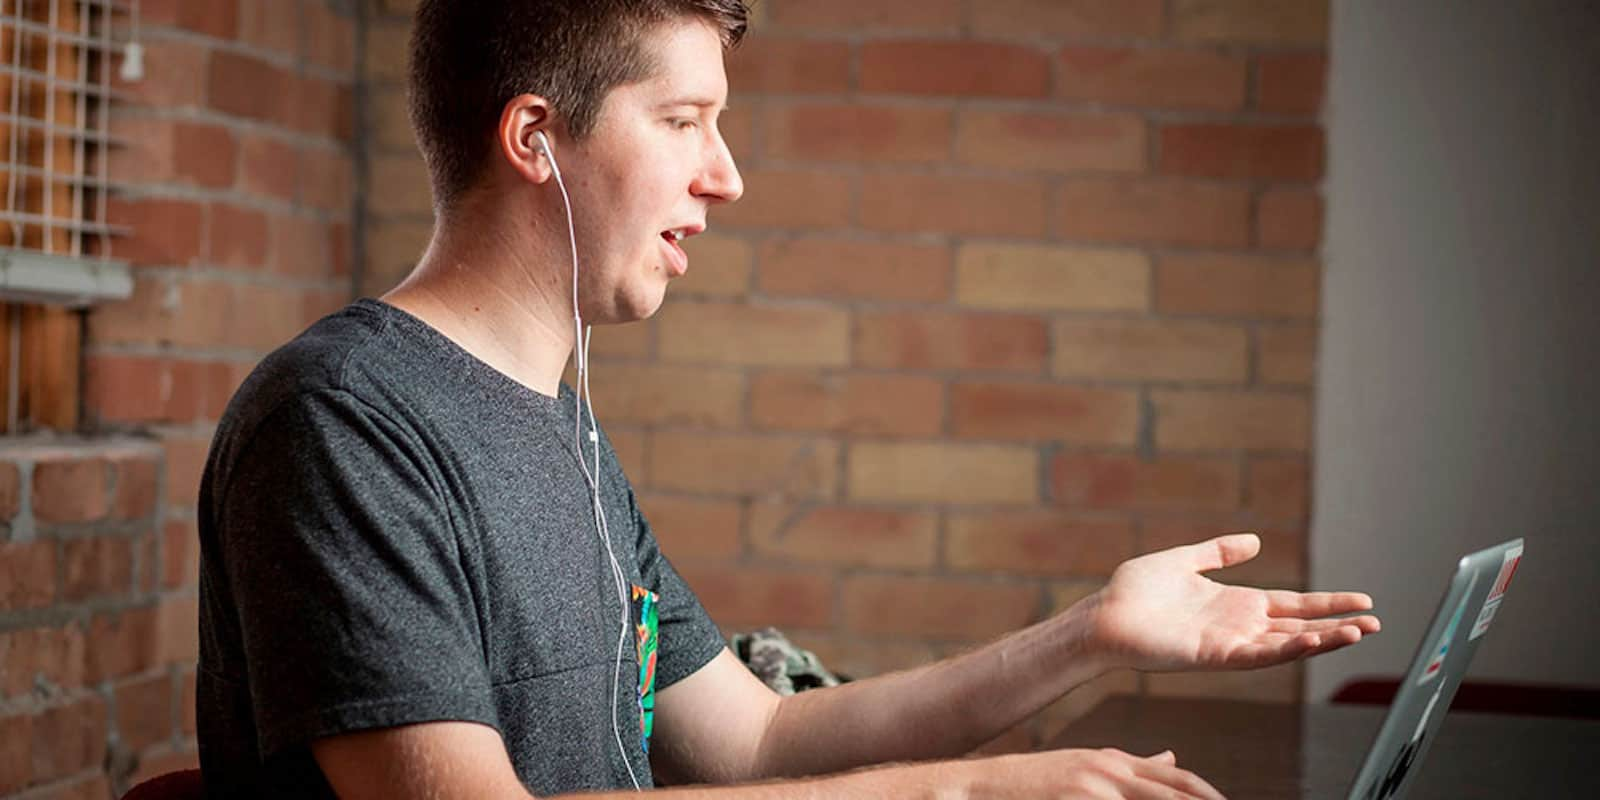 This course teaches iOS app development through hands-on exercises and lessons.